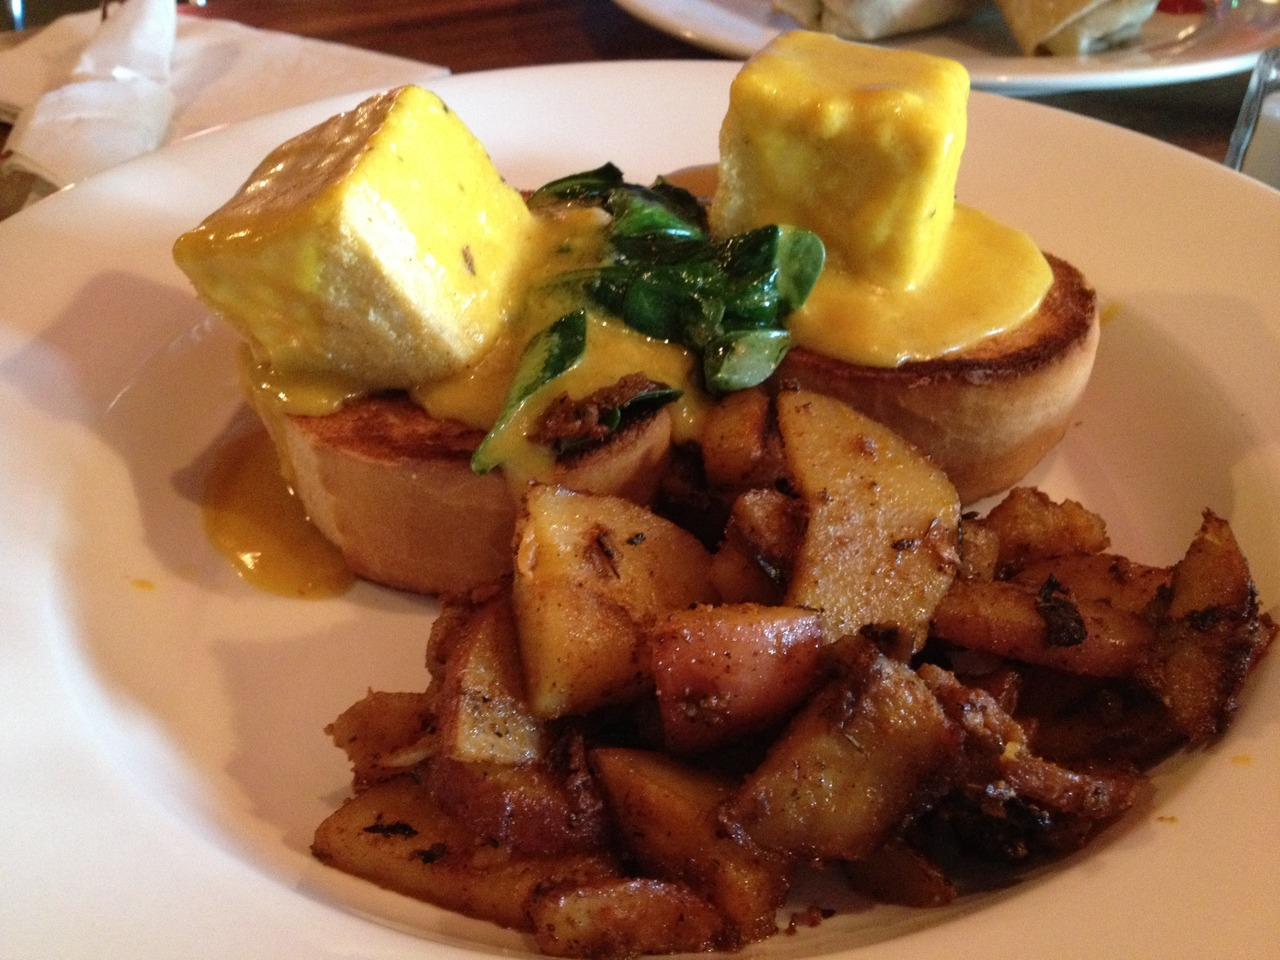 Tofu florentine benediction from Julian's in Providence, RI!